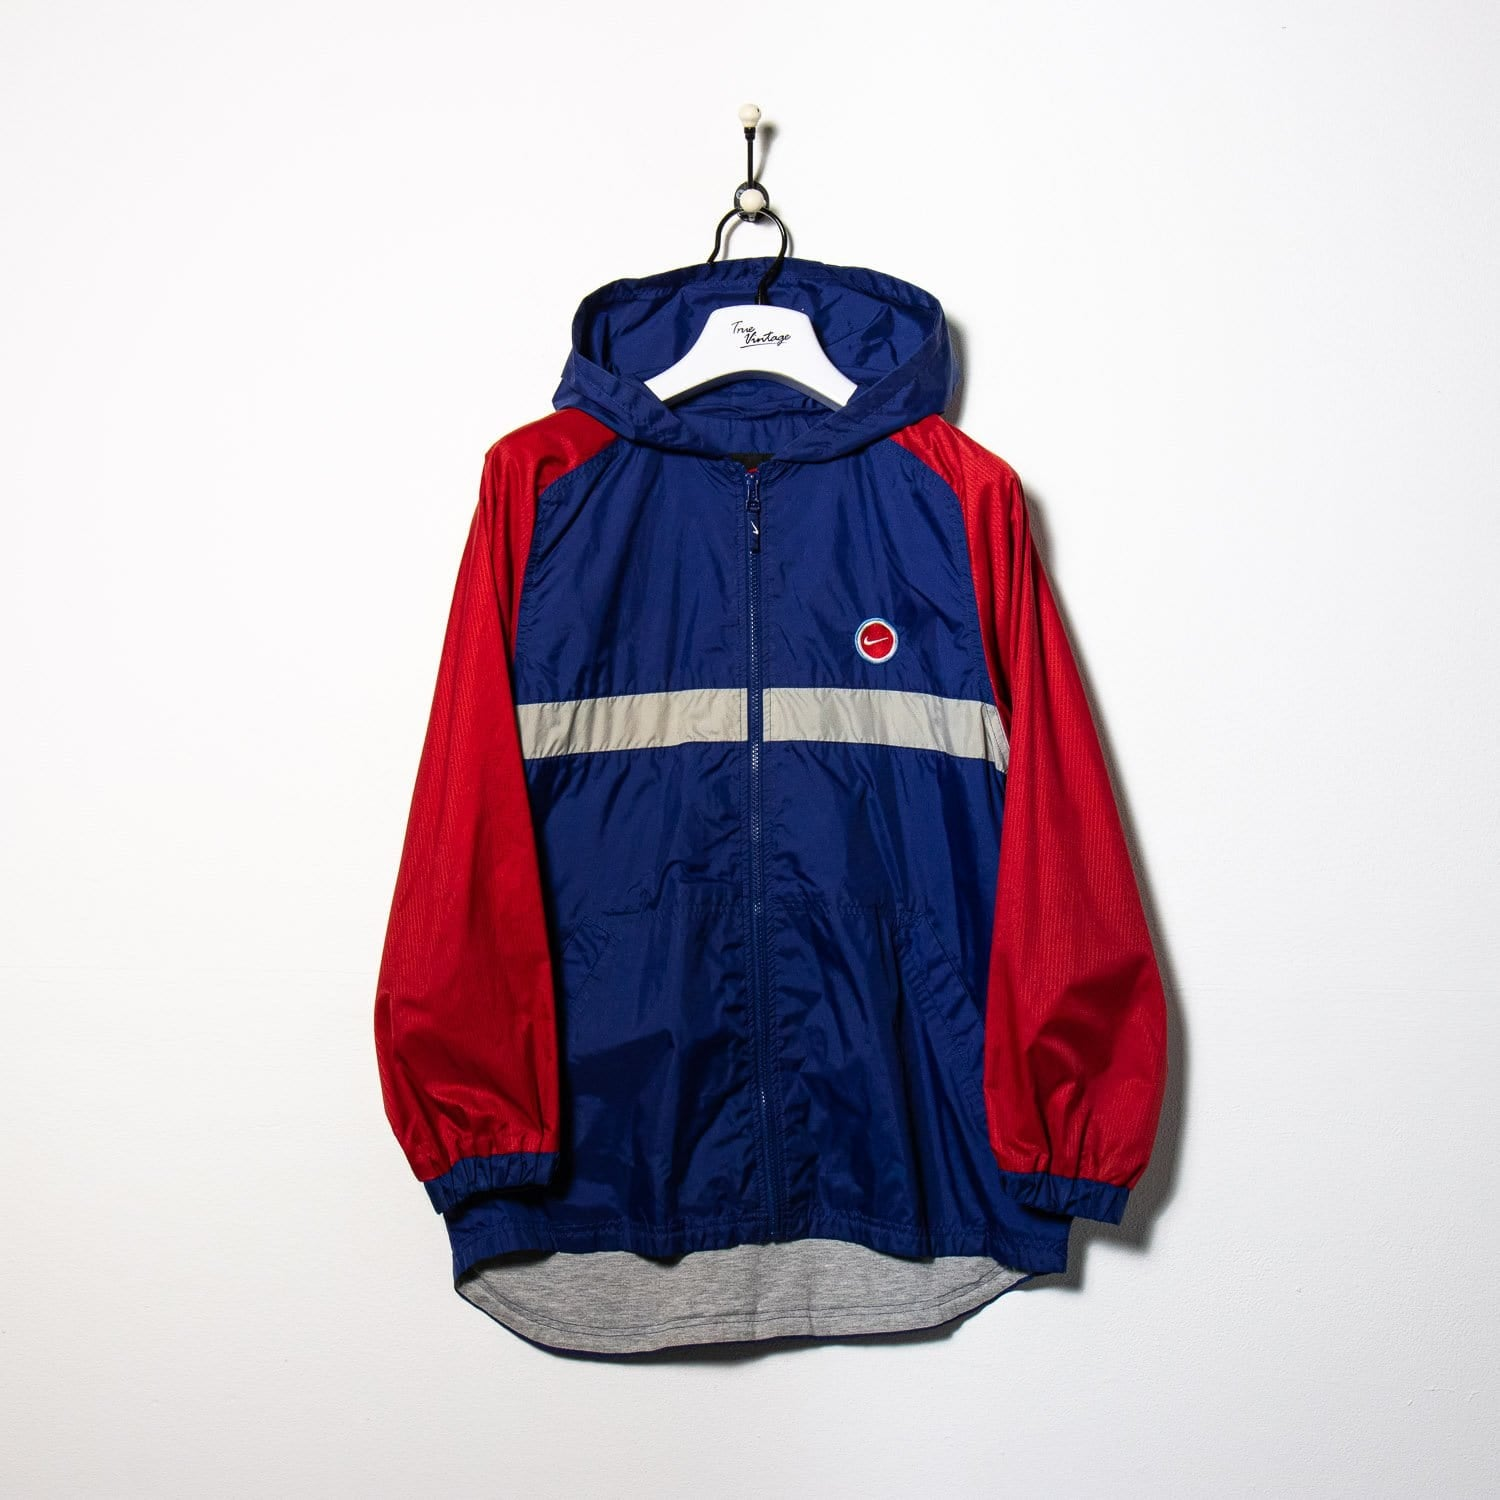 Fubu Sweatshirt Red Small